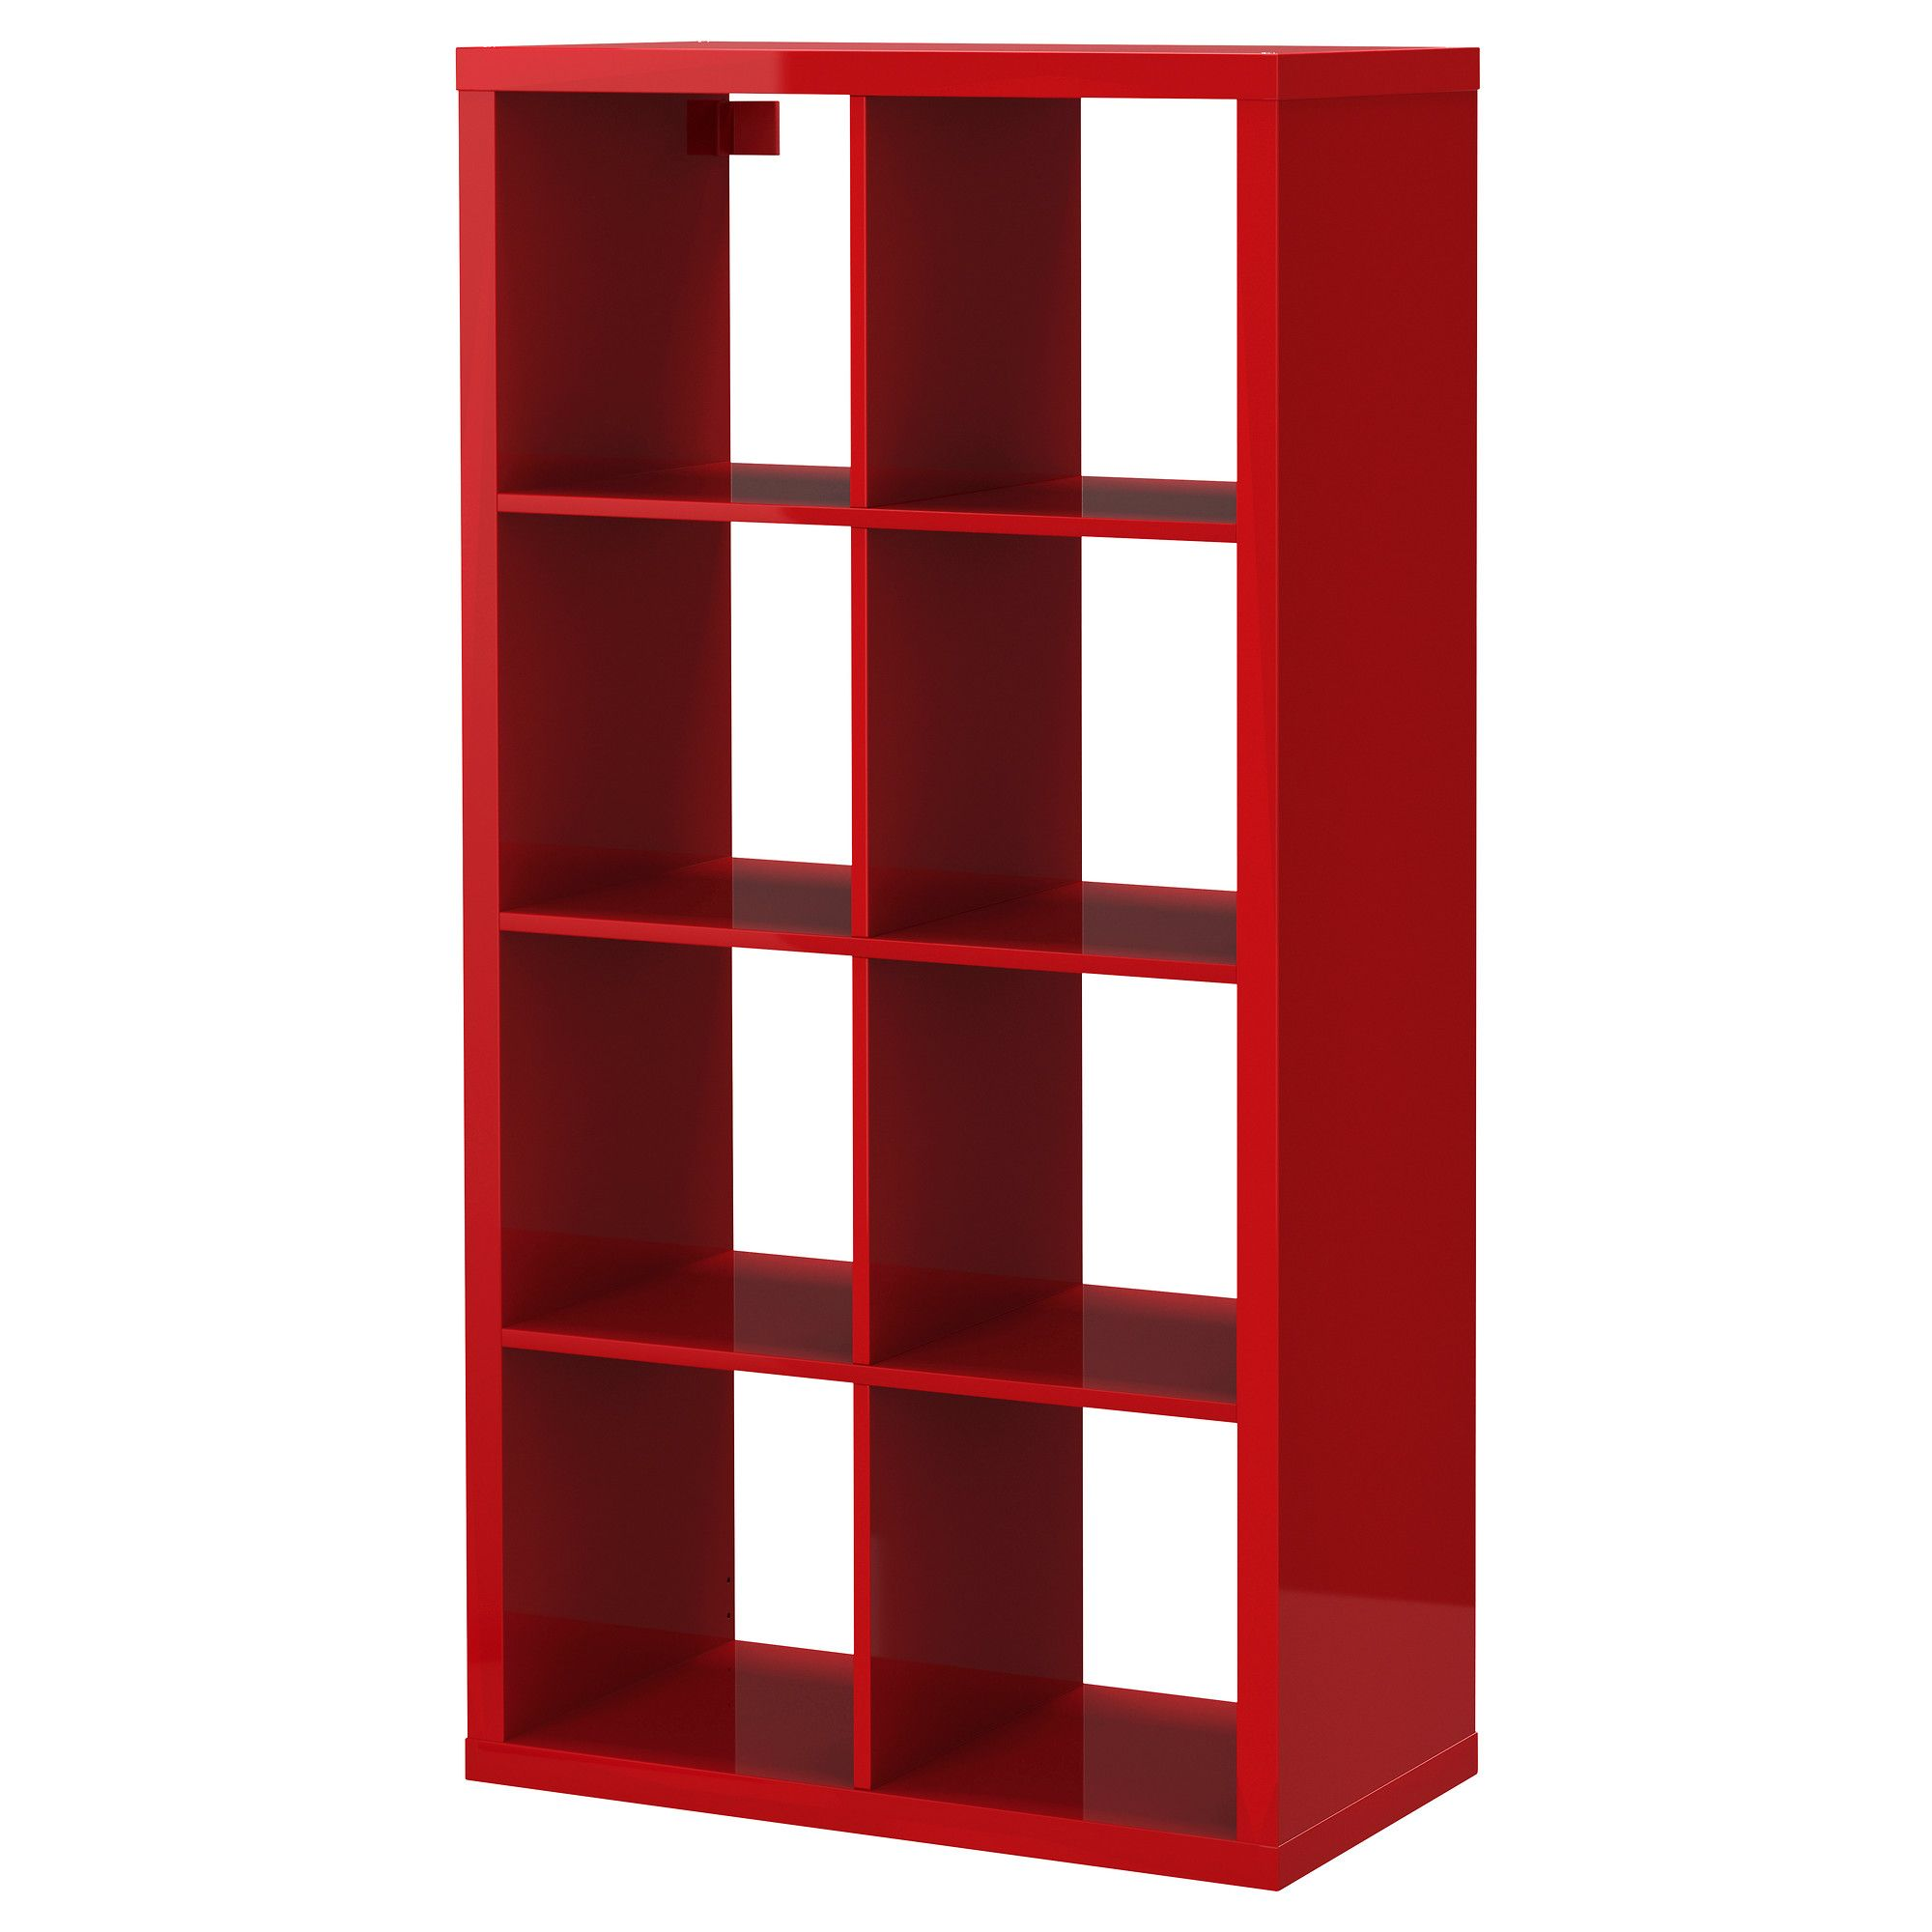 Kallax Tag Re Ultrabrillant Rouge Ikea Meubles Idee  # Placard Metallique Ikea Rouge